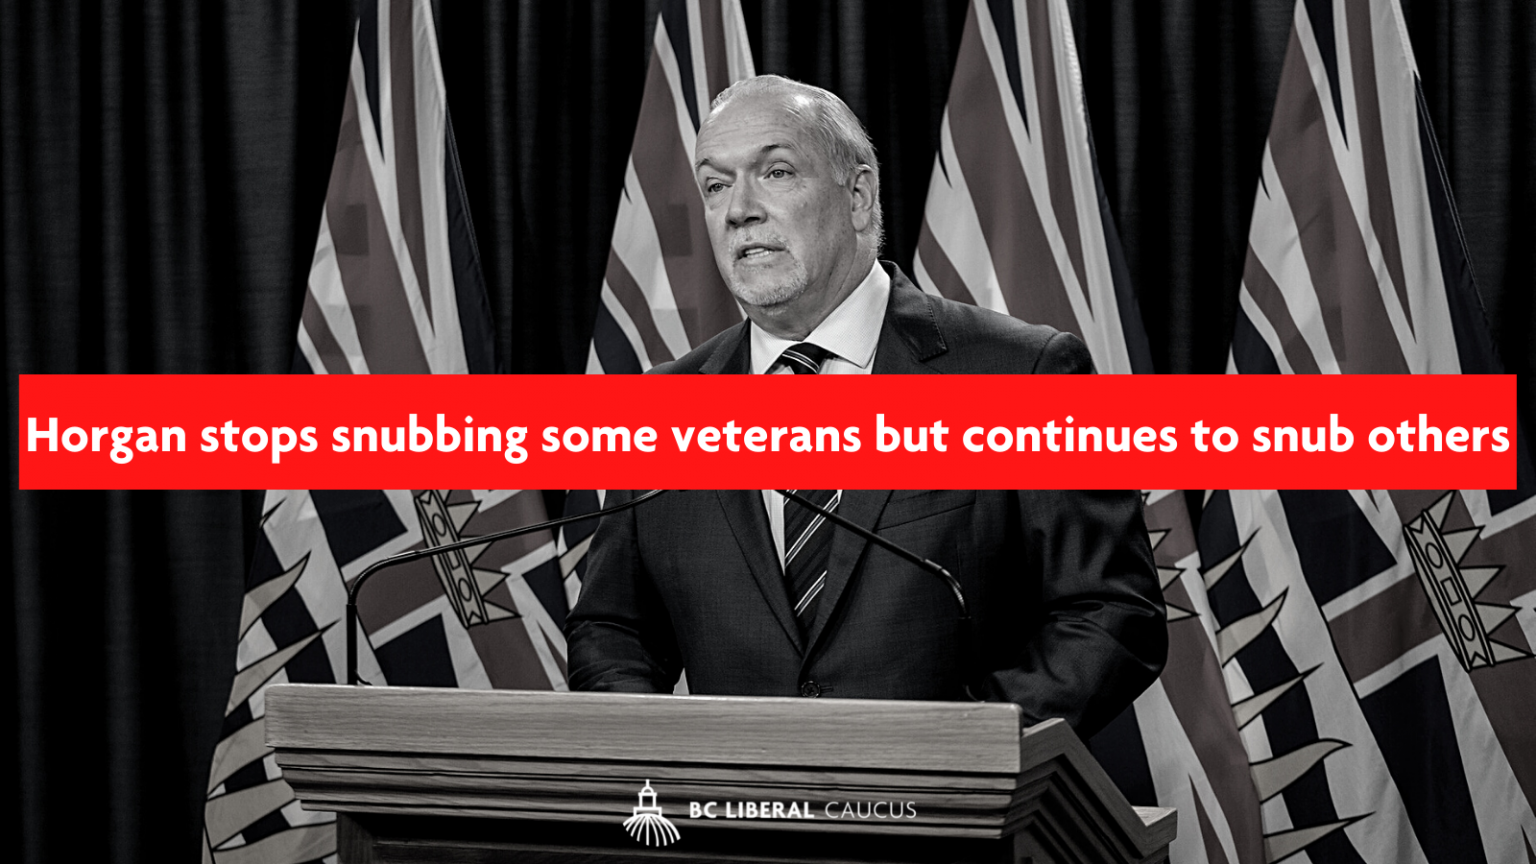 Horgan stops snubbing some veterans but continues to snub others